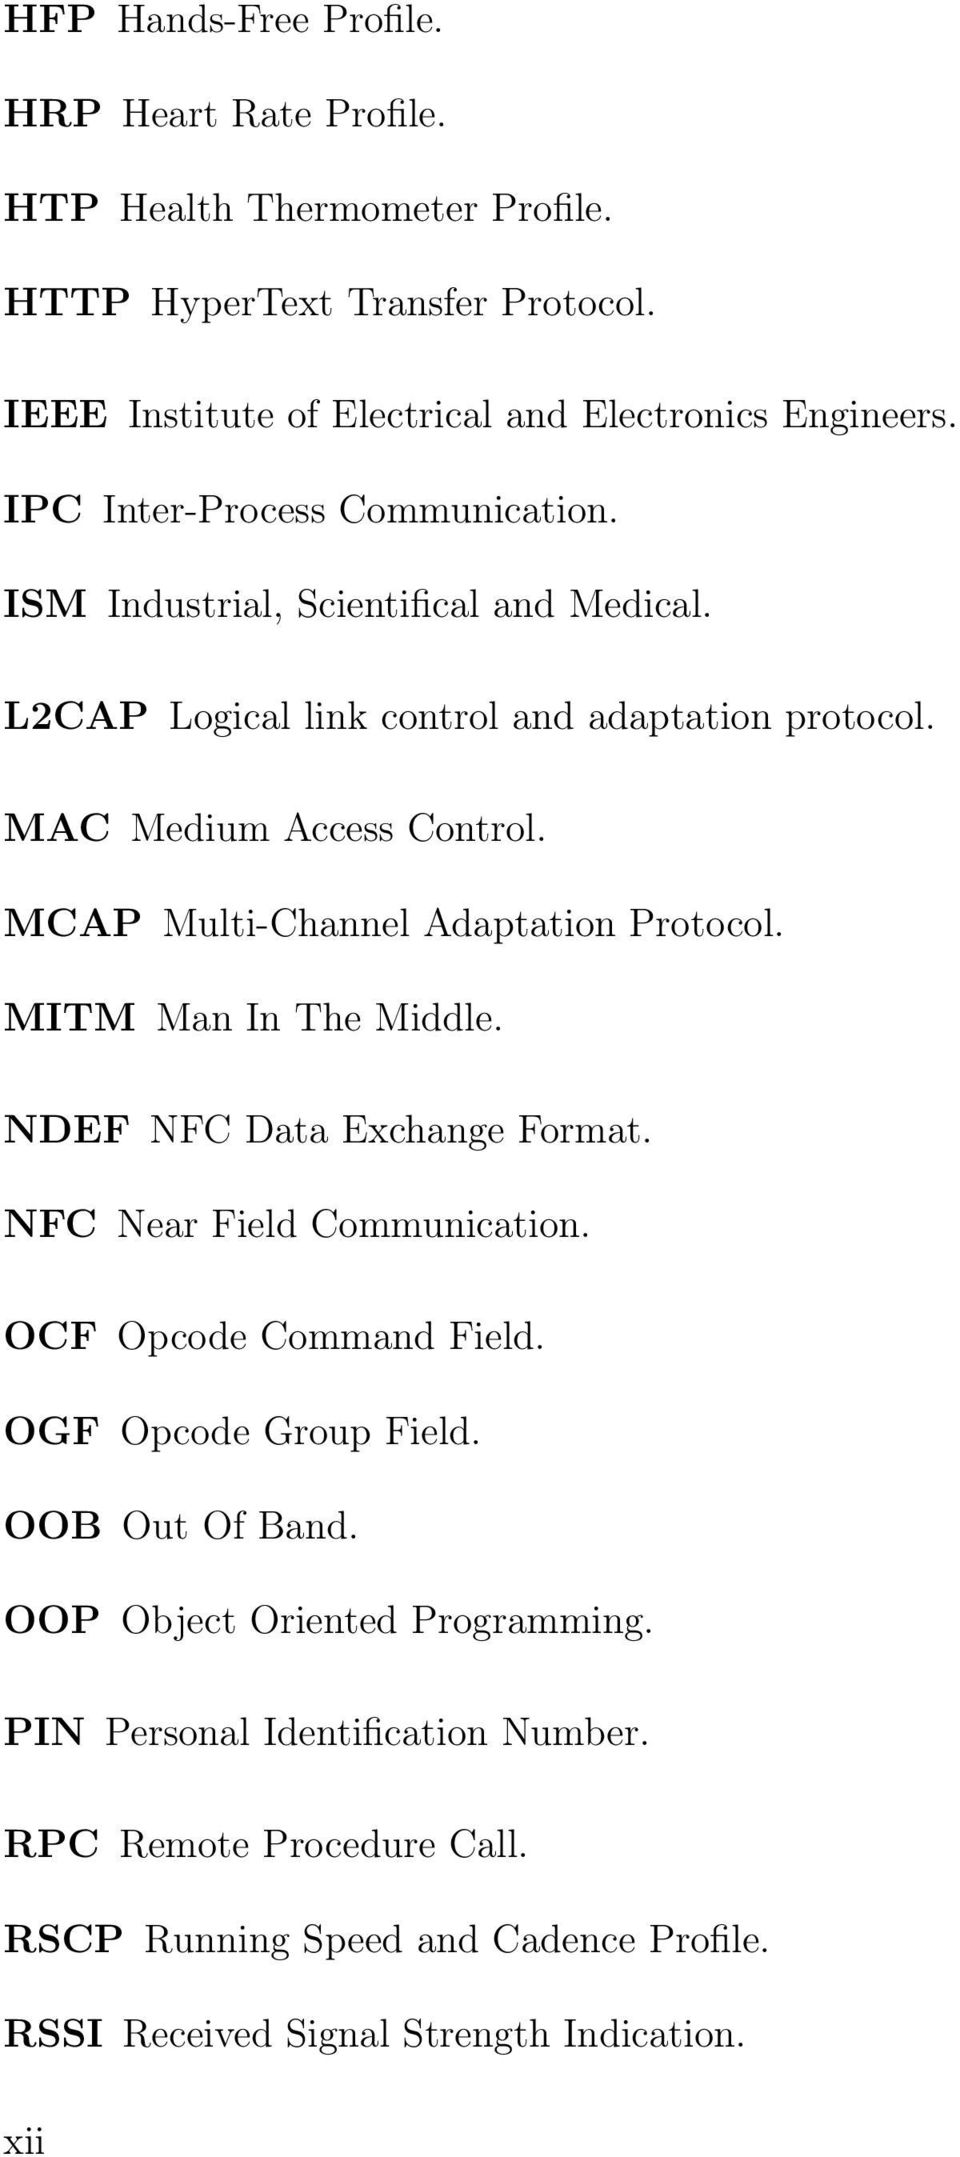 MCAP Multi-Channel Adaptation Protocol. MITM Man In The Middle. NDEF NFC Data Exchange Format. NFC Near Field Communication. OCF Opcode Command Field. OGF Opcode Group Field.